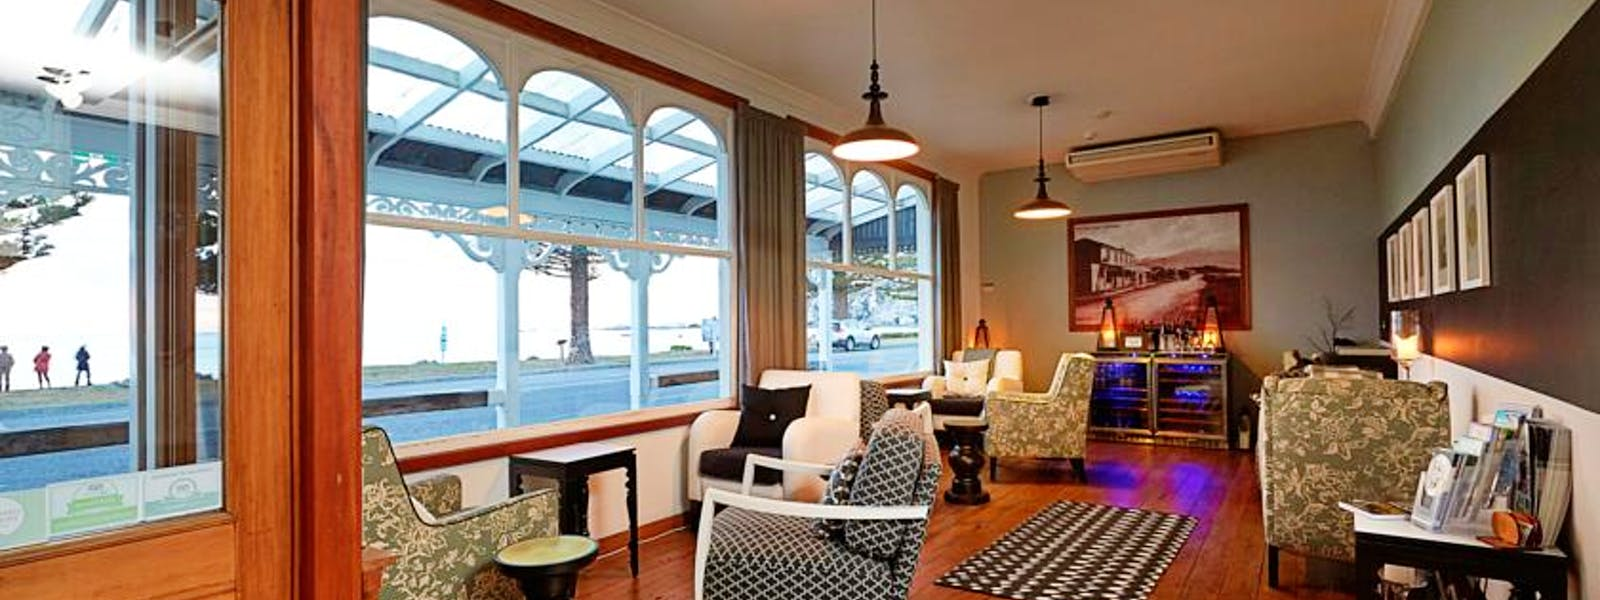 Guest lounge / wine bar overlooking the bay